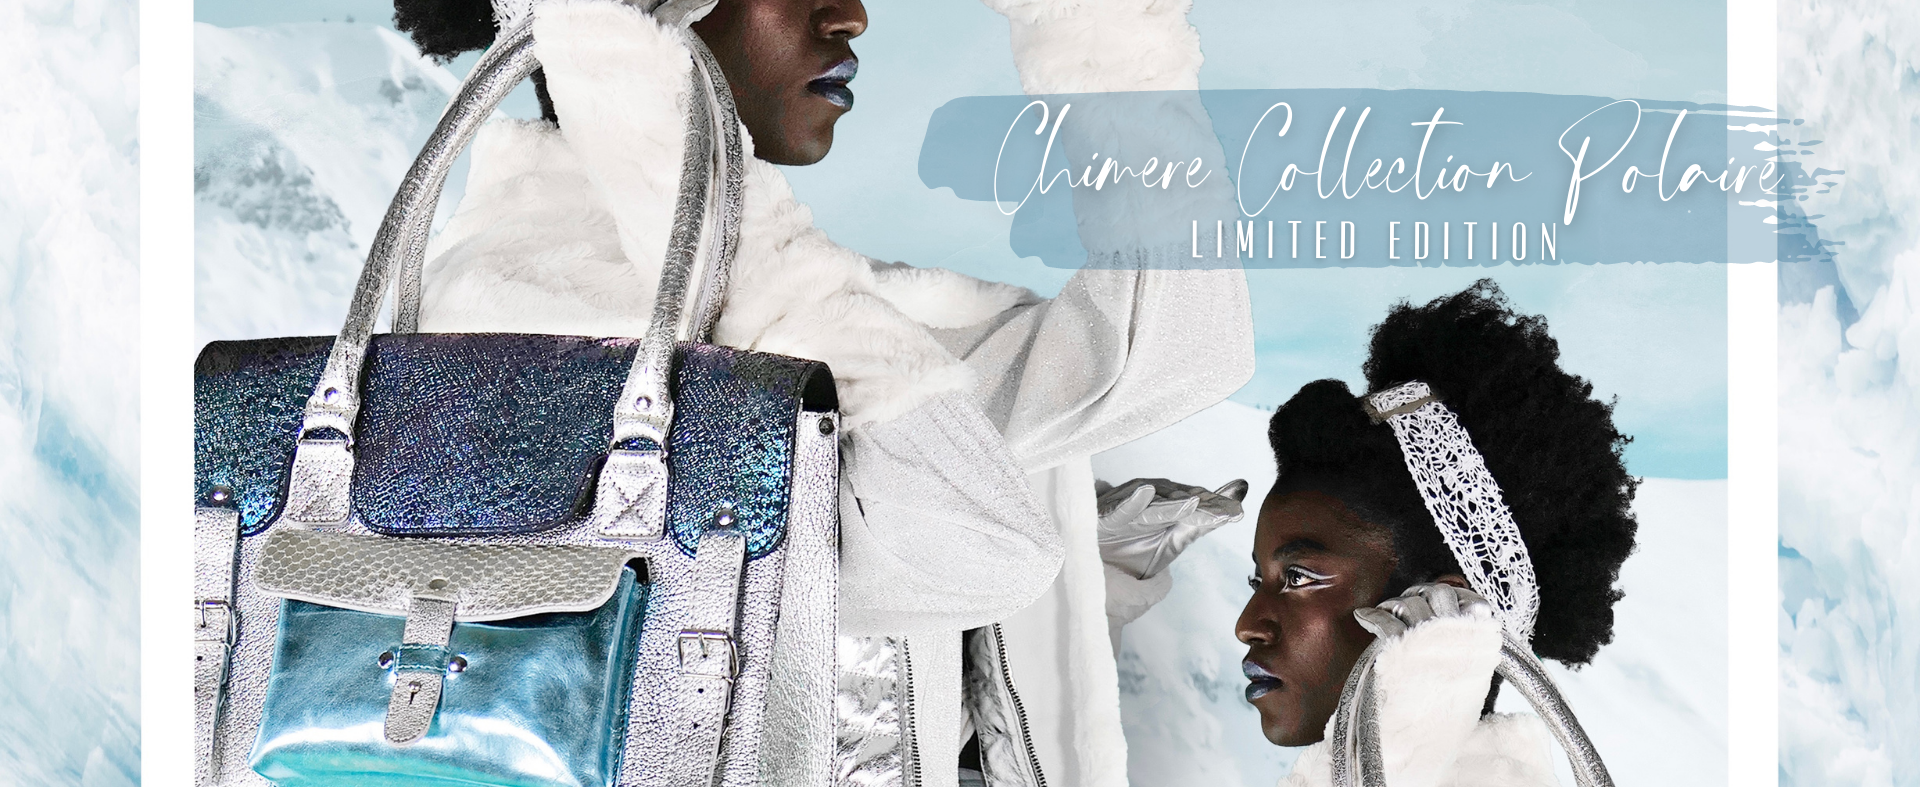 New Chimere Collection Polaire